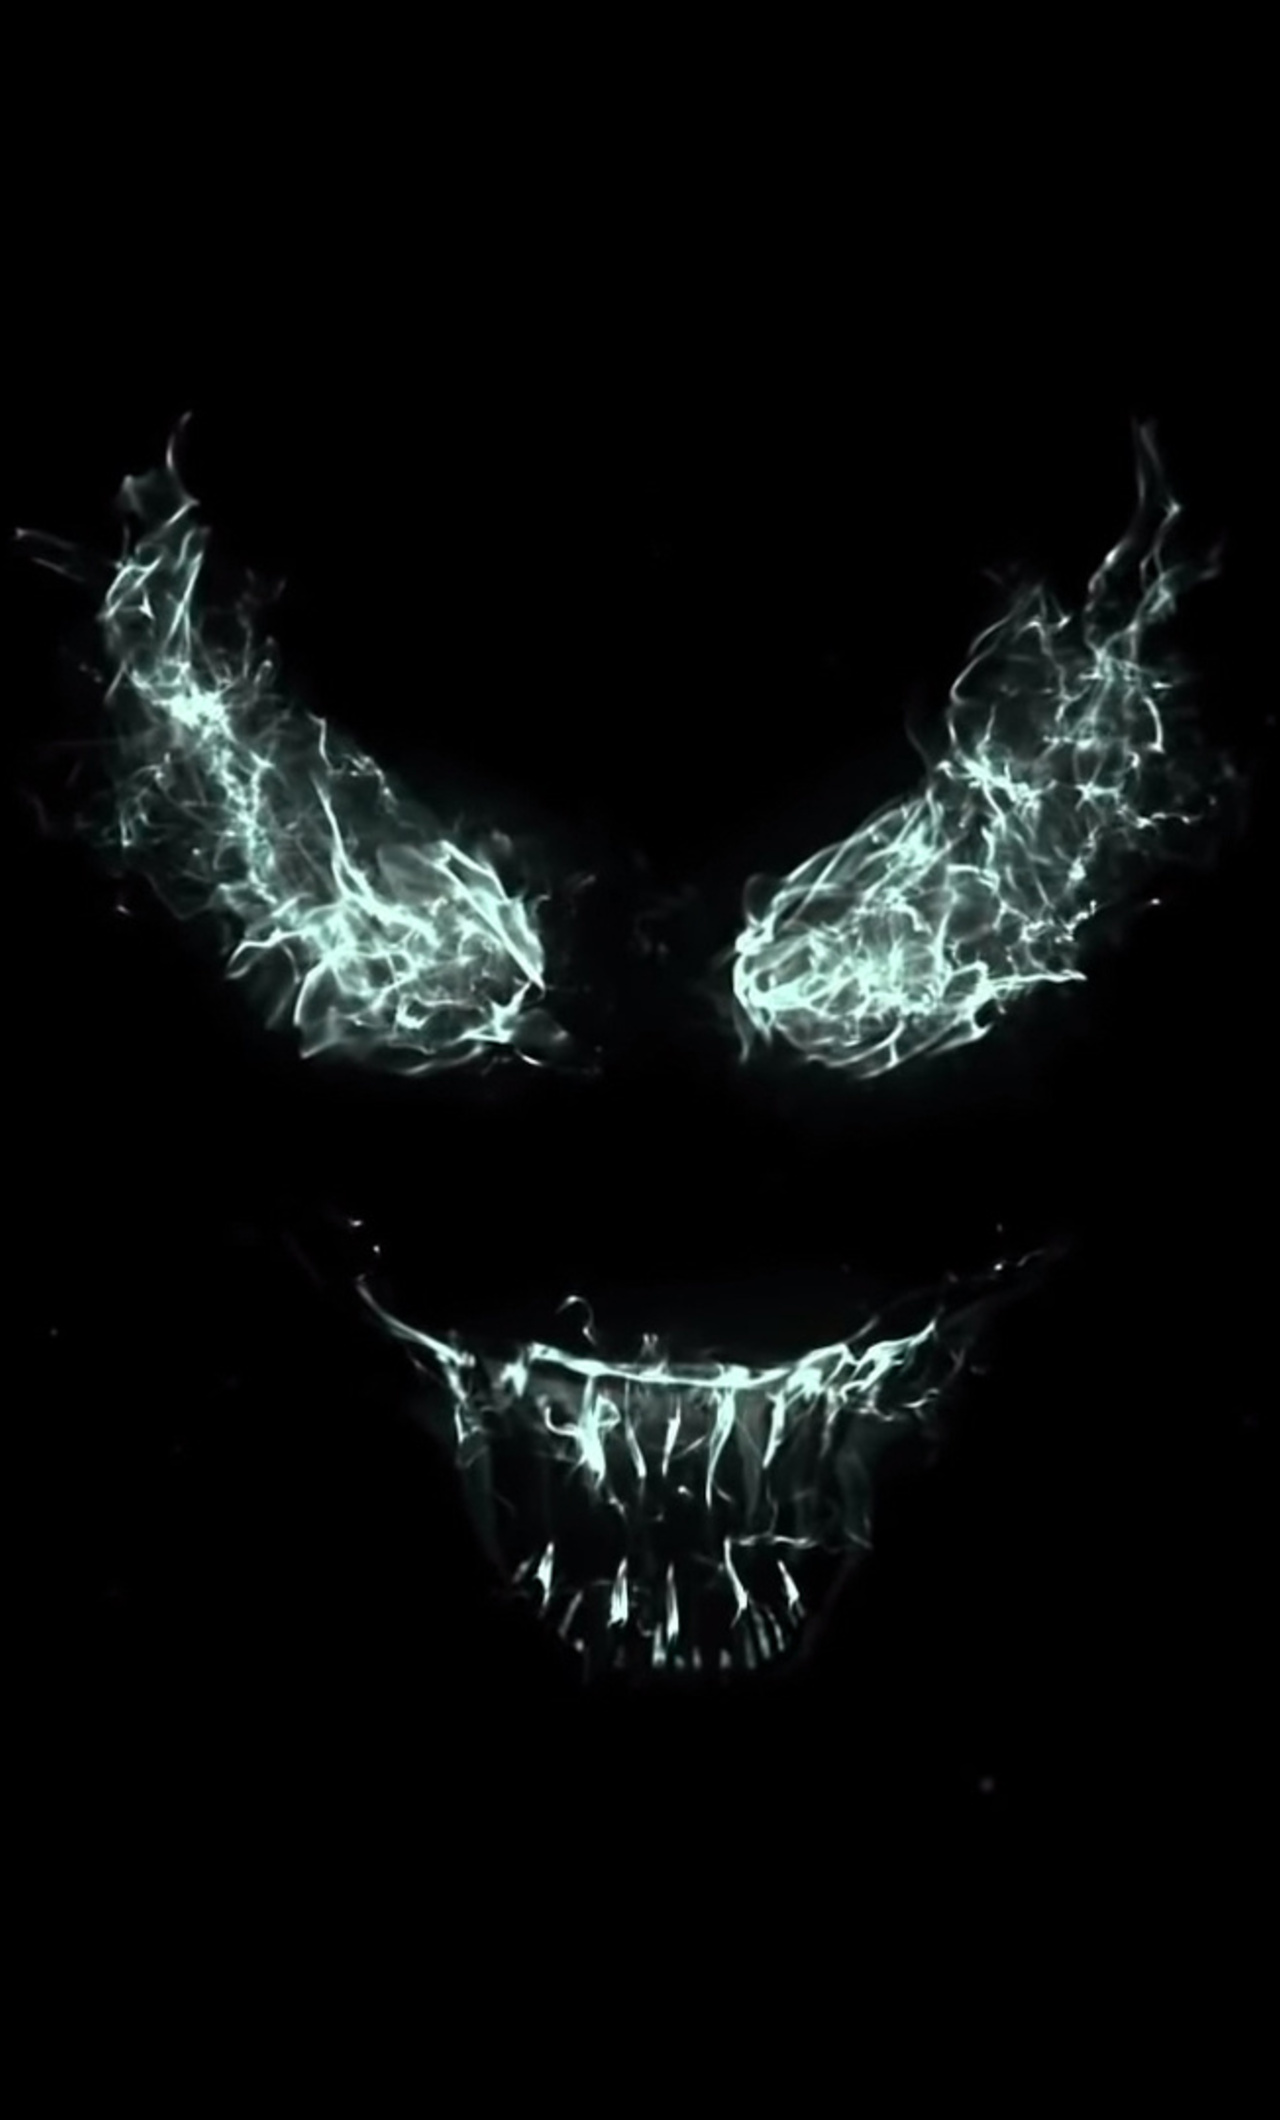 1280x2120 venom movie 2018 iphone 6 hd 4k wallpapers - Venom hd wallpaper android ...